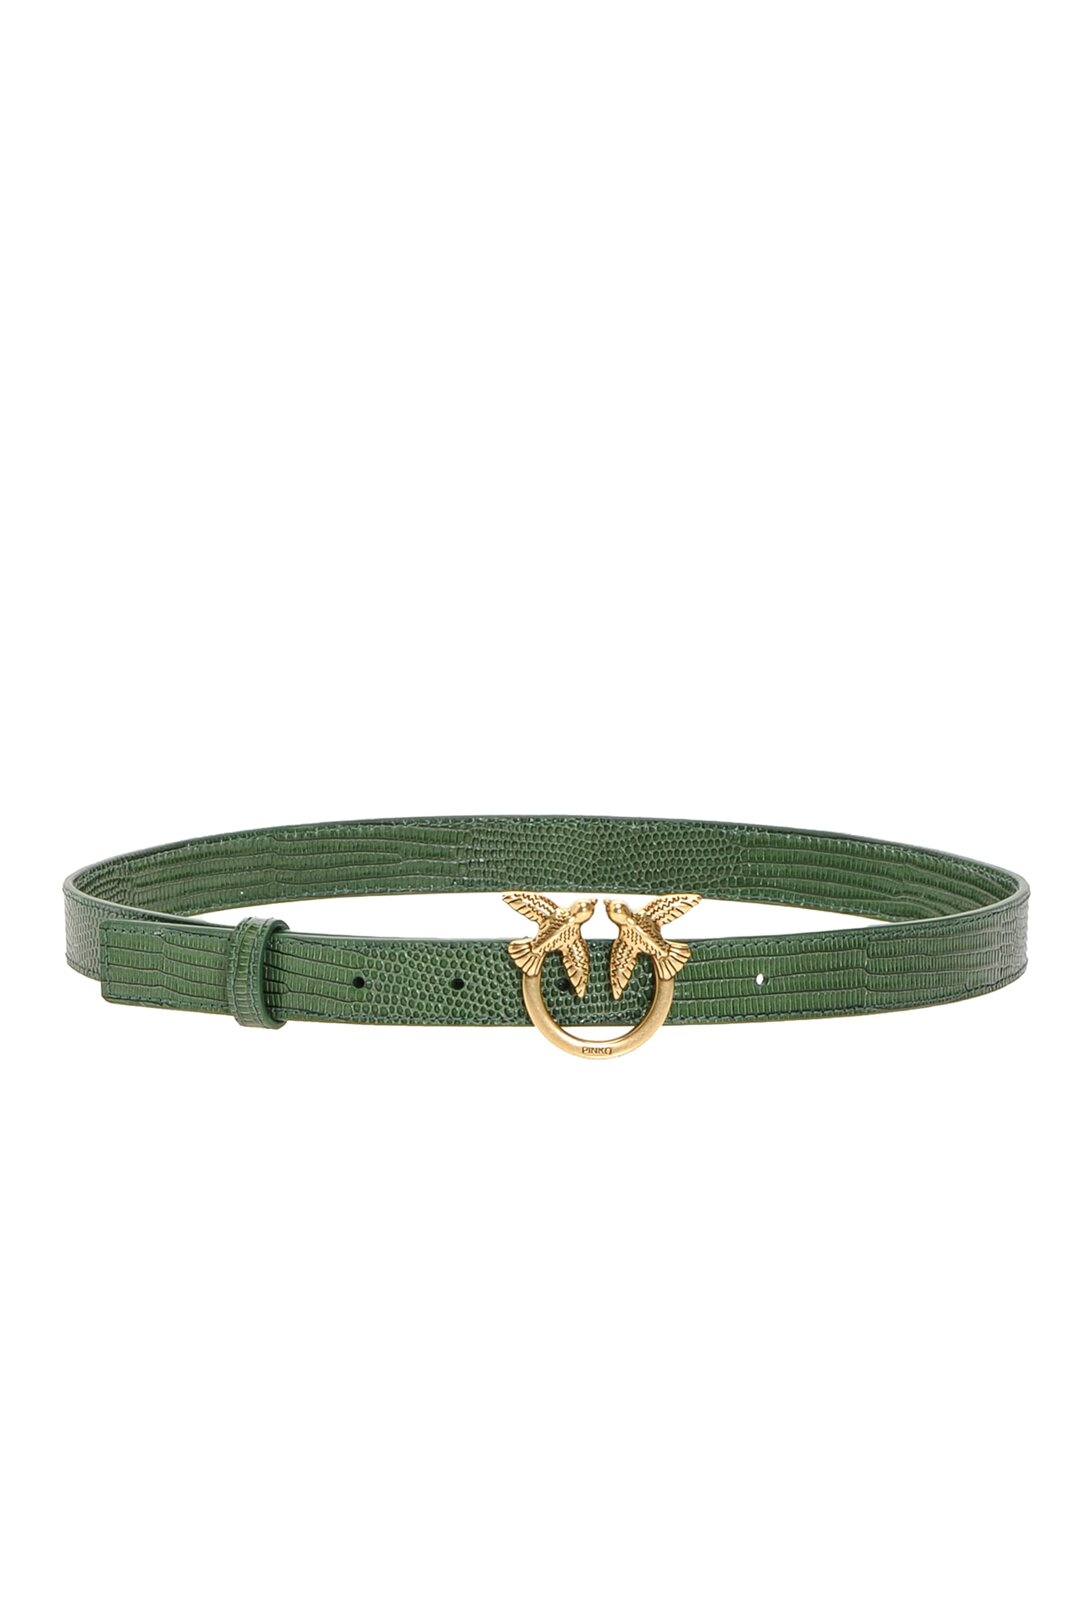 Low Reptile Effect Belt with Love Birds Buckle - Pinko